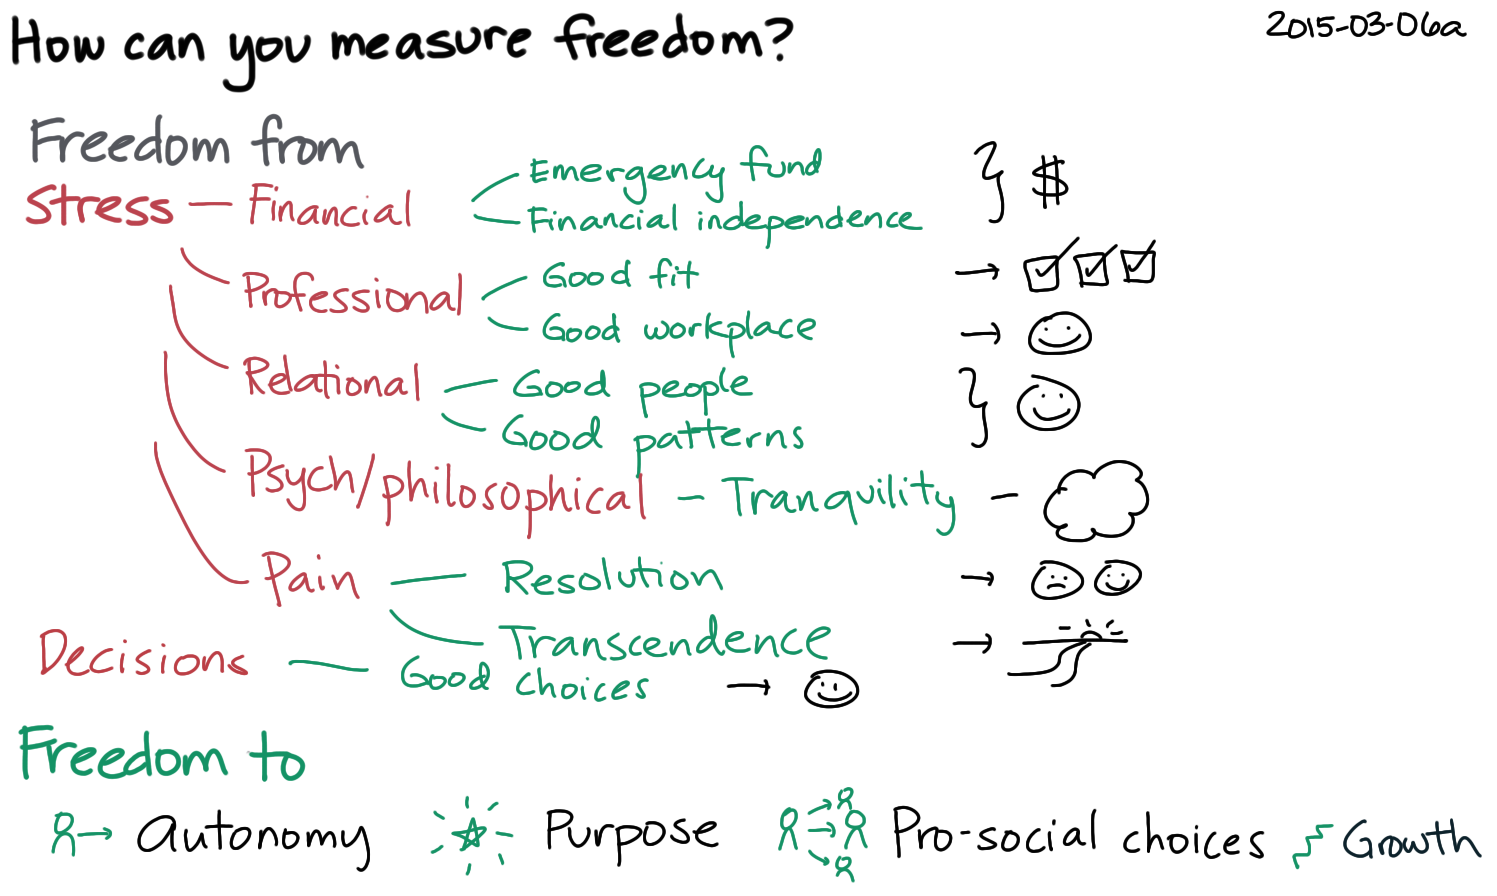 2015-03-06a How can you measure freedom -- index card #freedom #independence #quantified.png